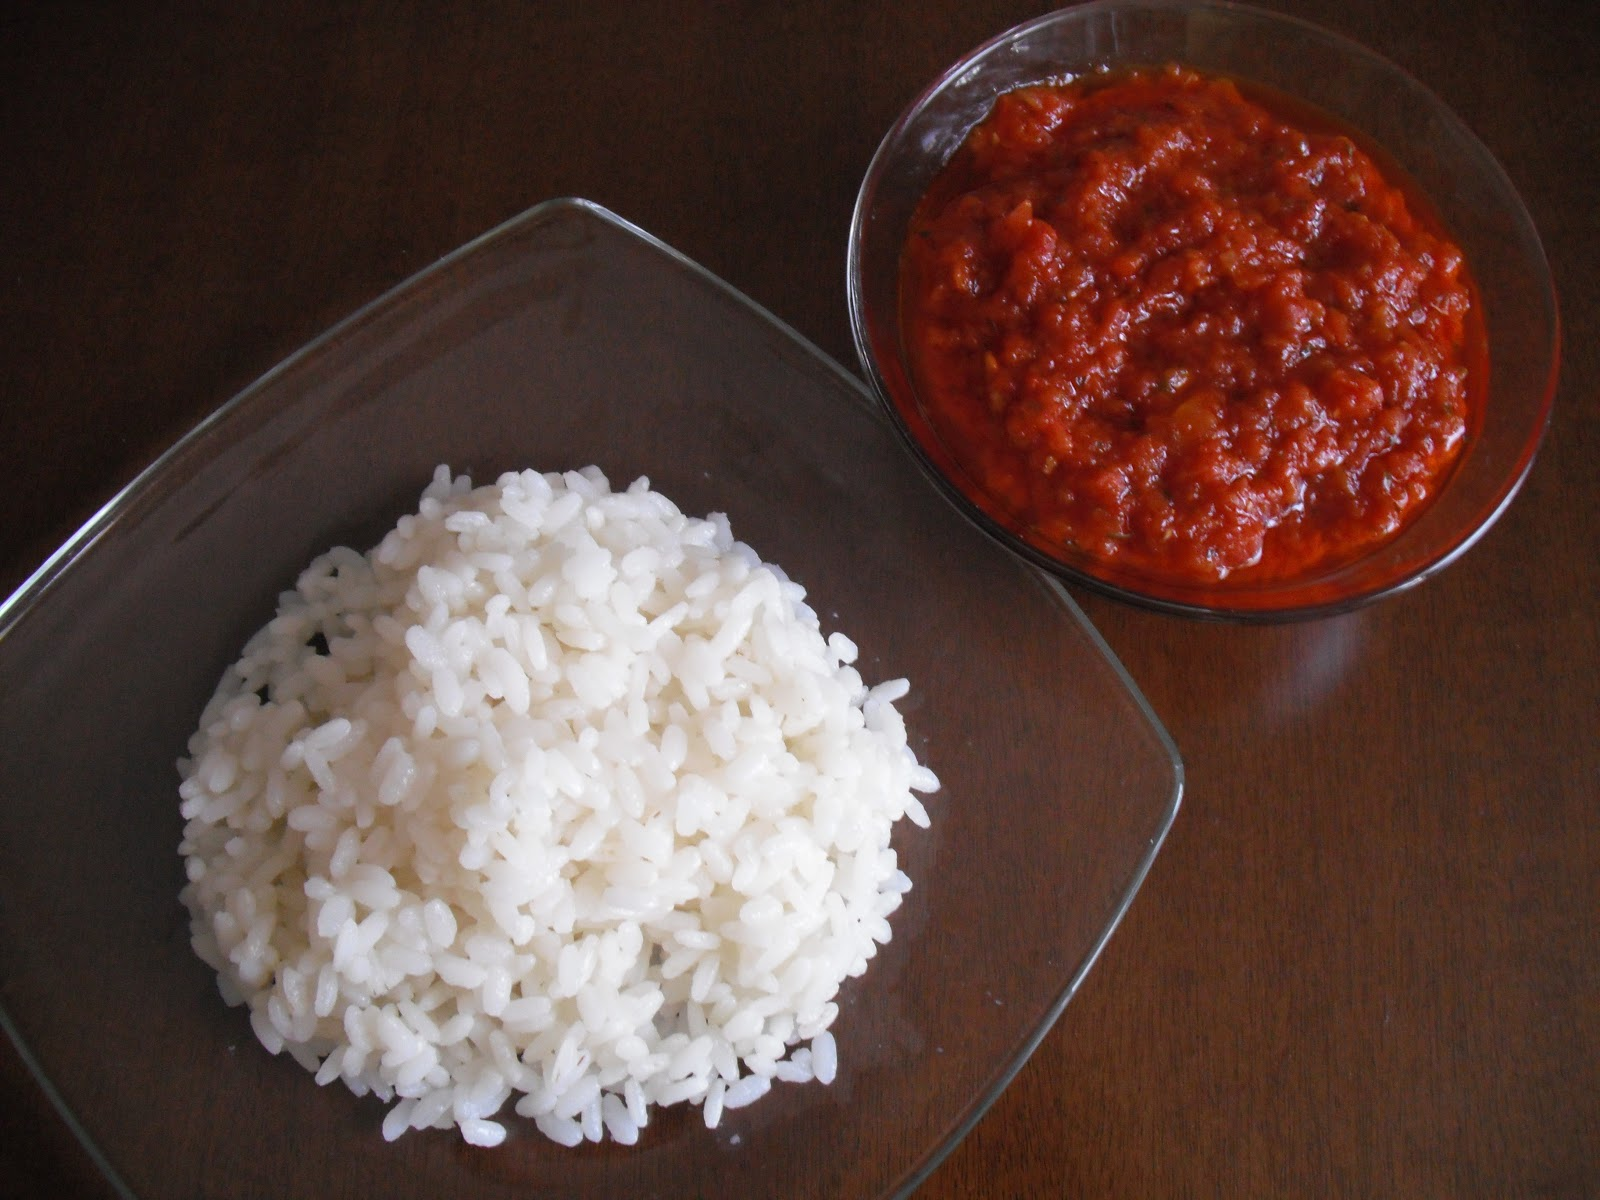 ginger n spice tomato sauce rougaille recipes dishmaps ginger n spice ...